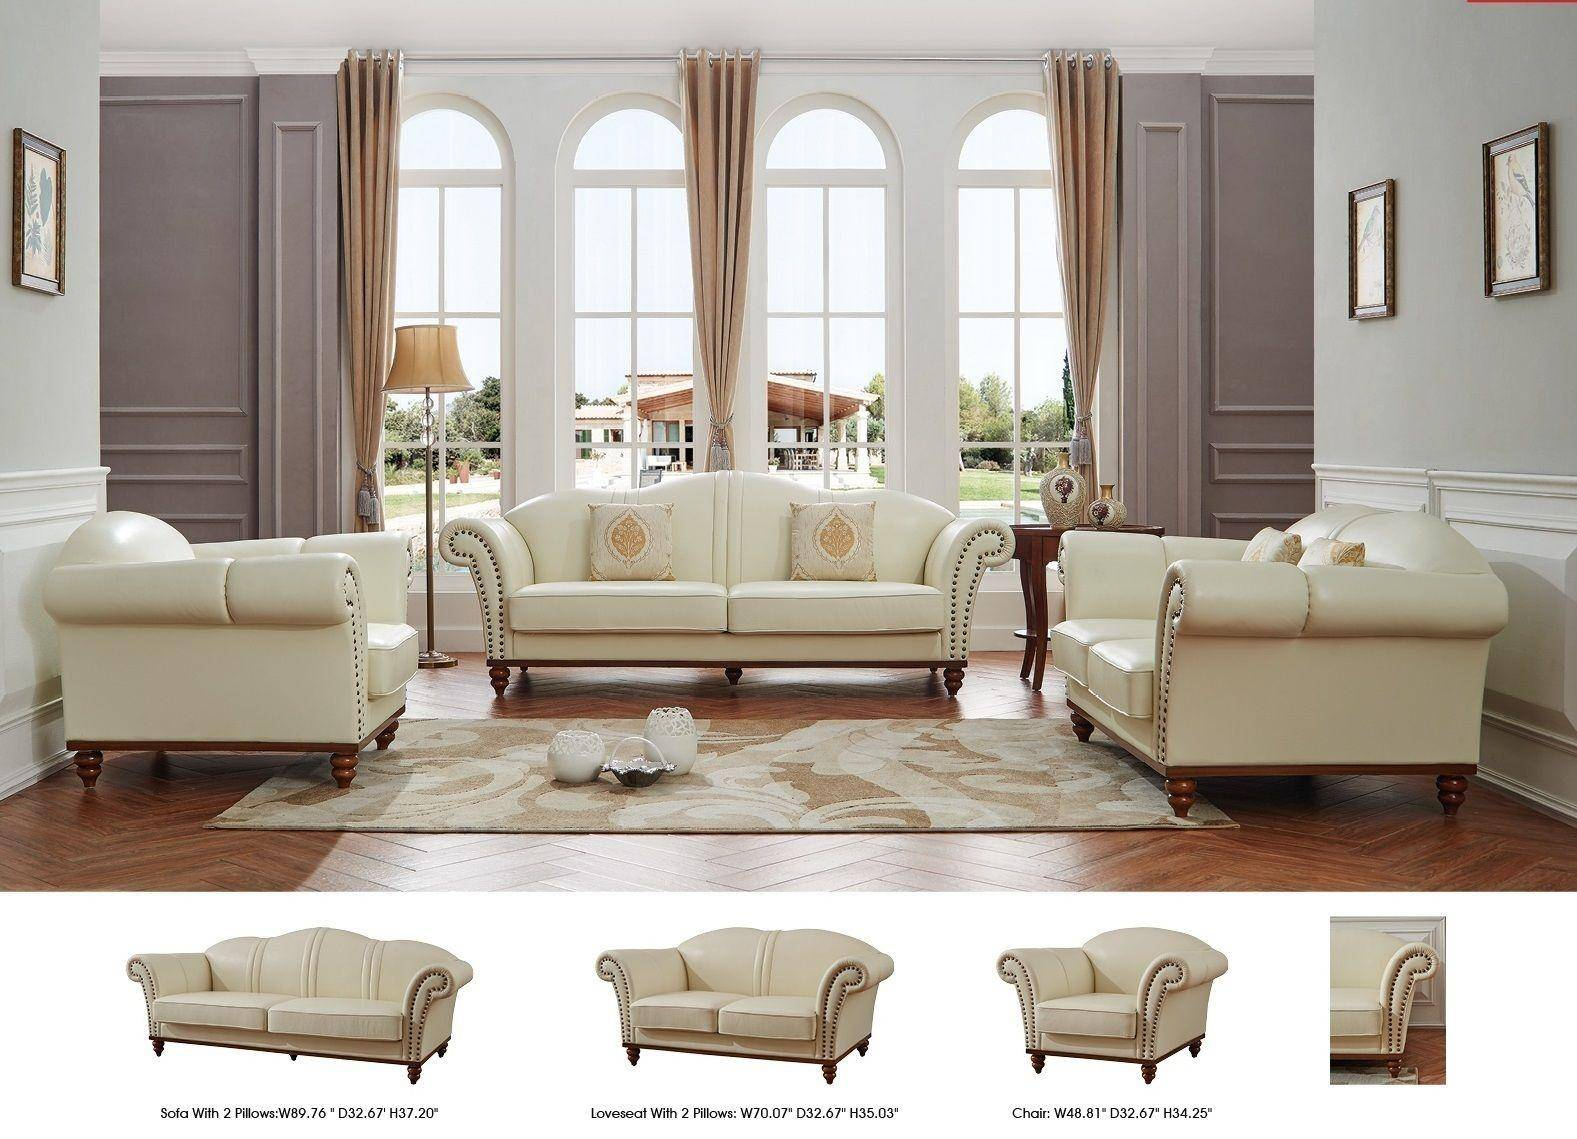 Sofa Set On Sale Esf 2601 Ivory Italian Leather Living Room Sofa Set 2pcs Modern